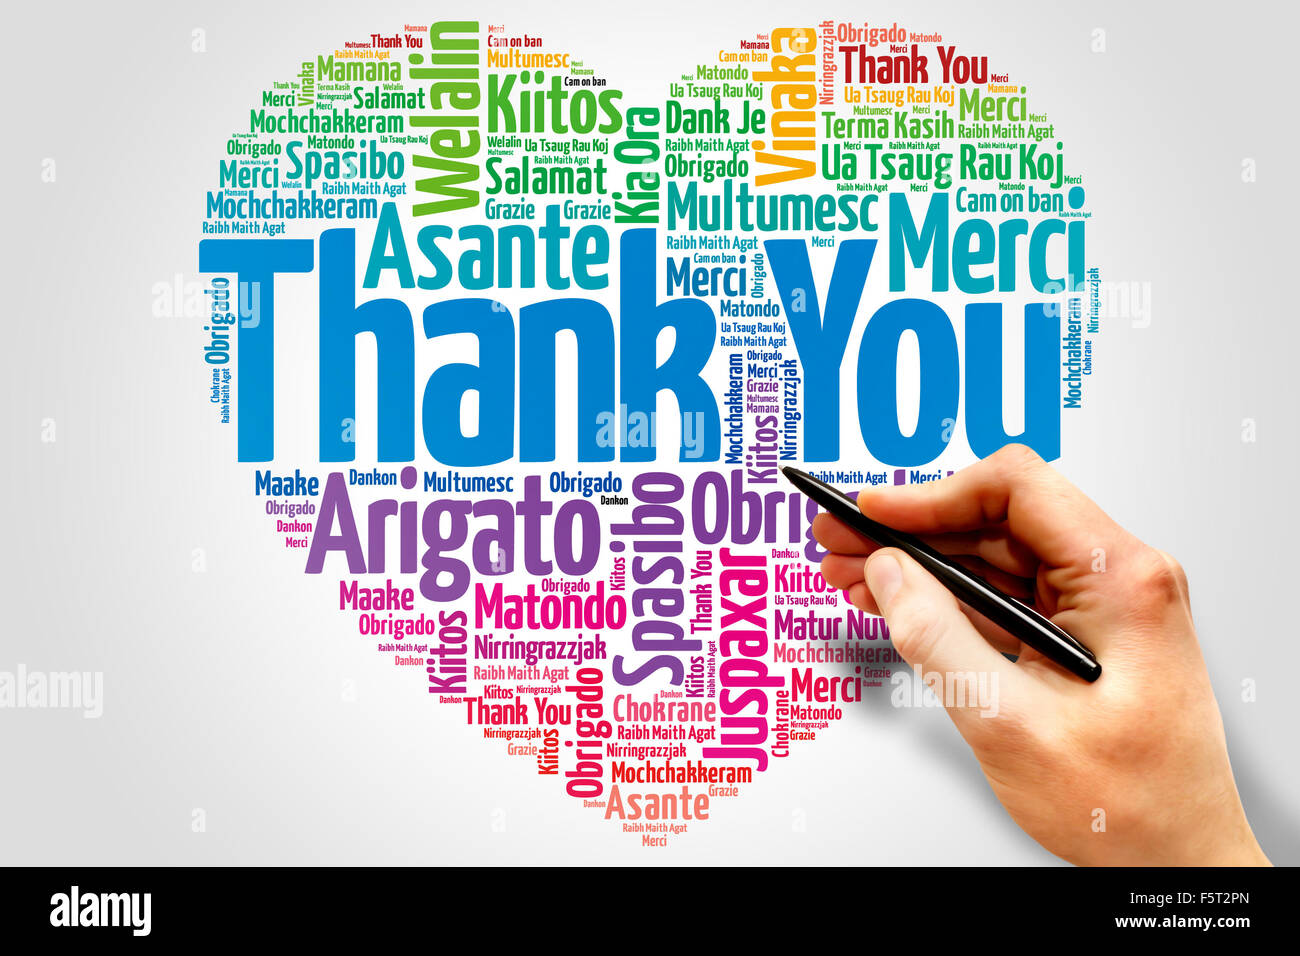 Thank You in many languages - Stock Image